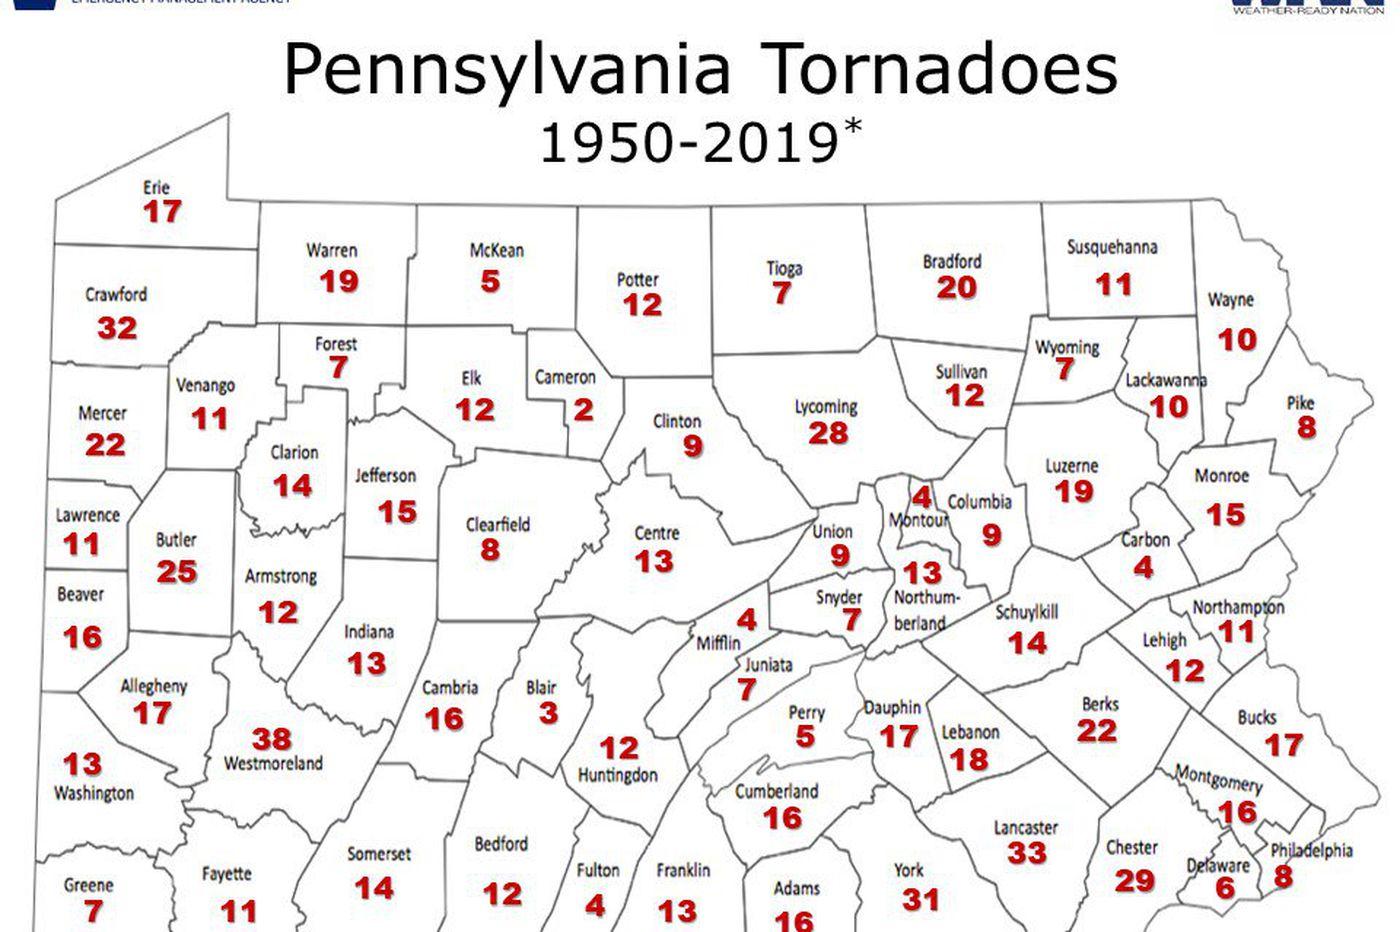 Sunday tornado confirmed at Bucks County campground; Pa. exceeds annual twister average